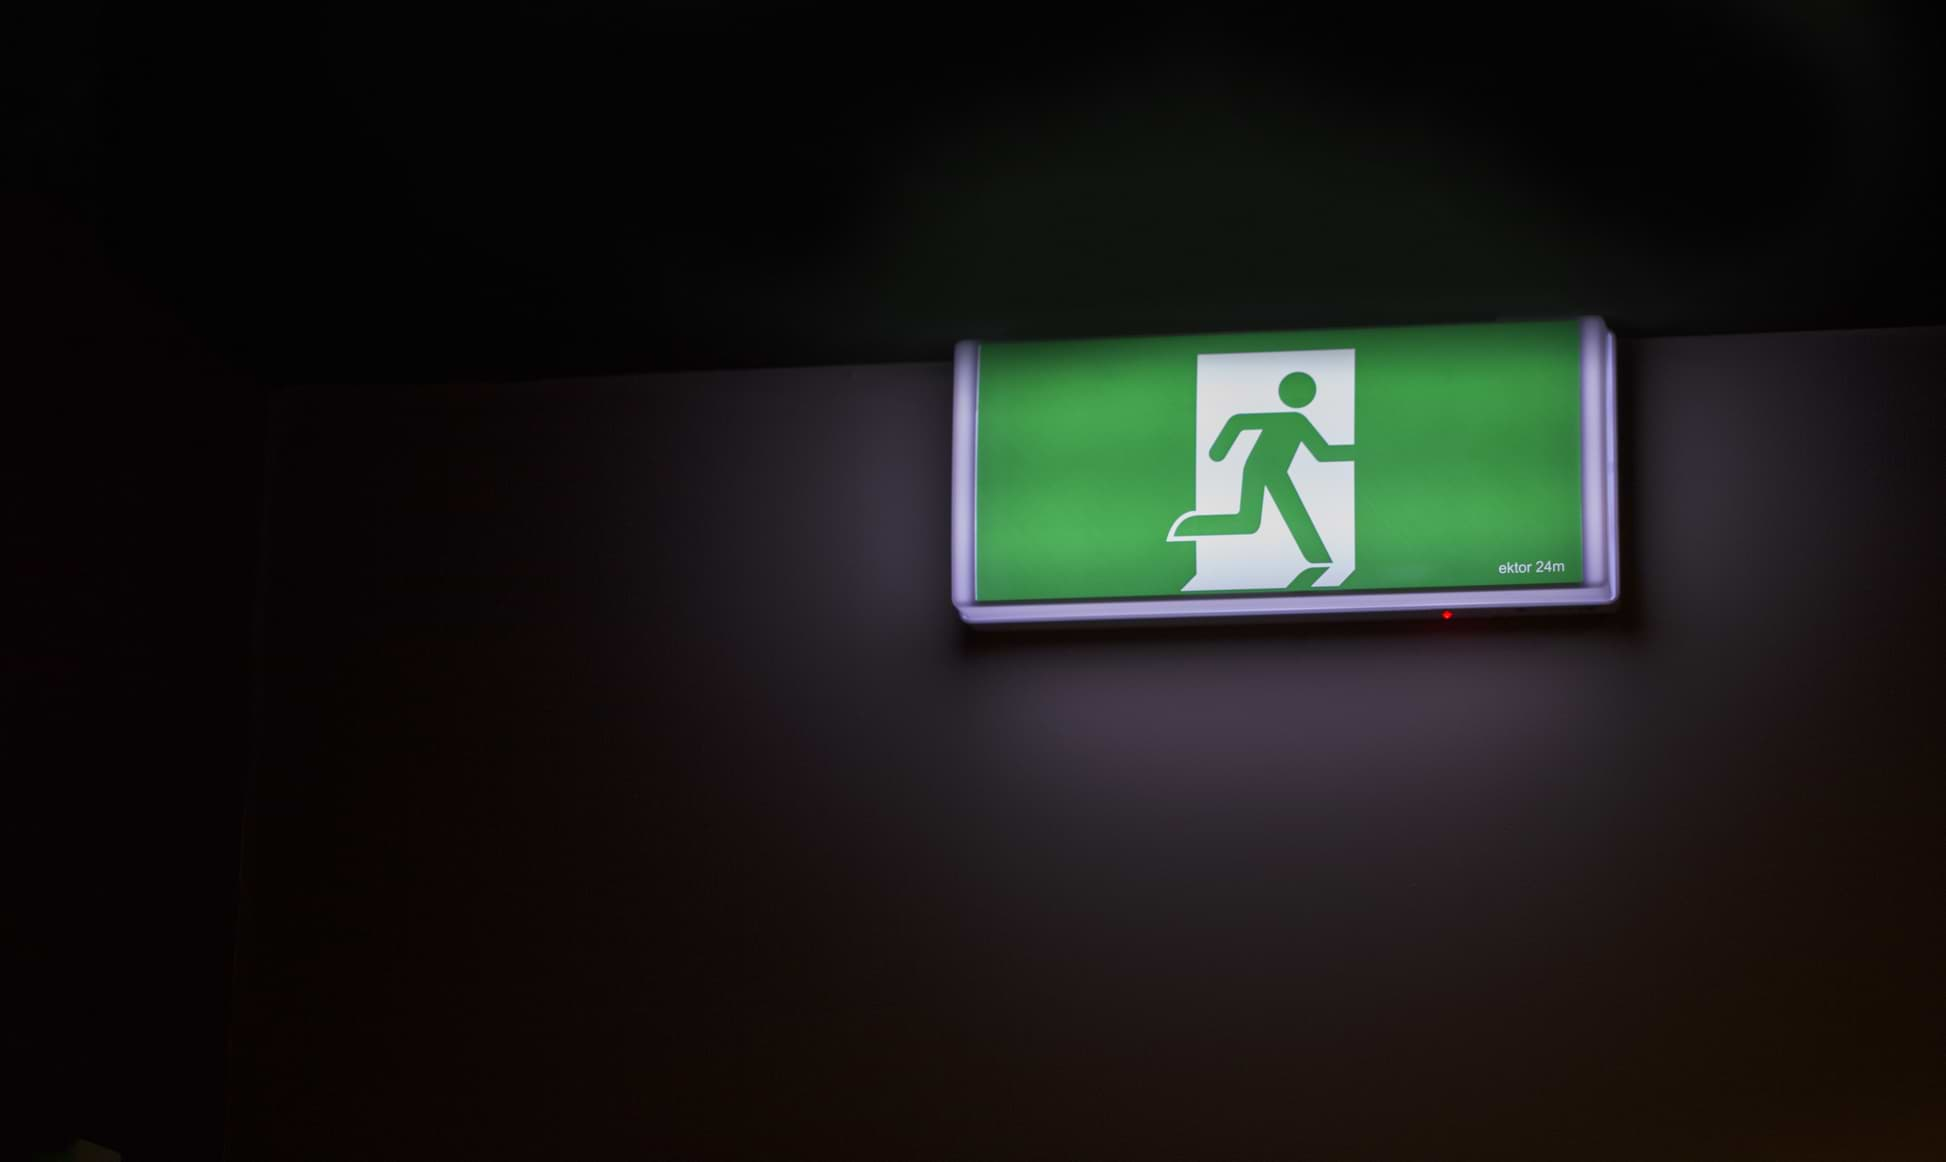 emergency lighting sign in a building